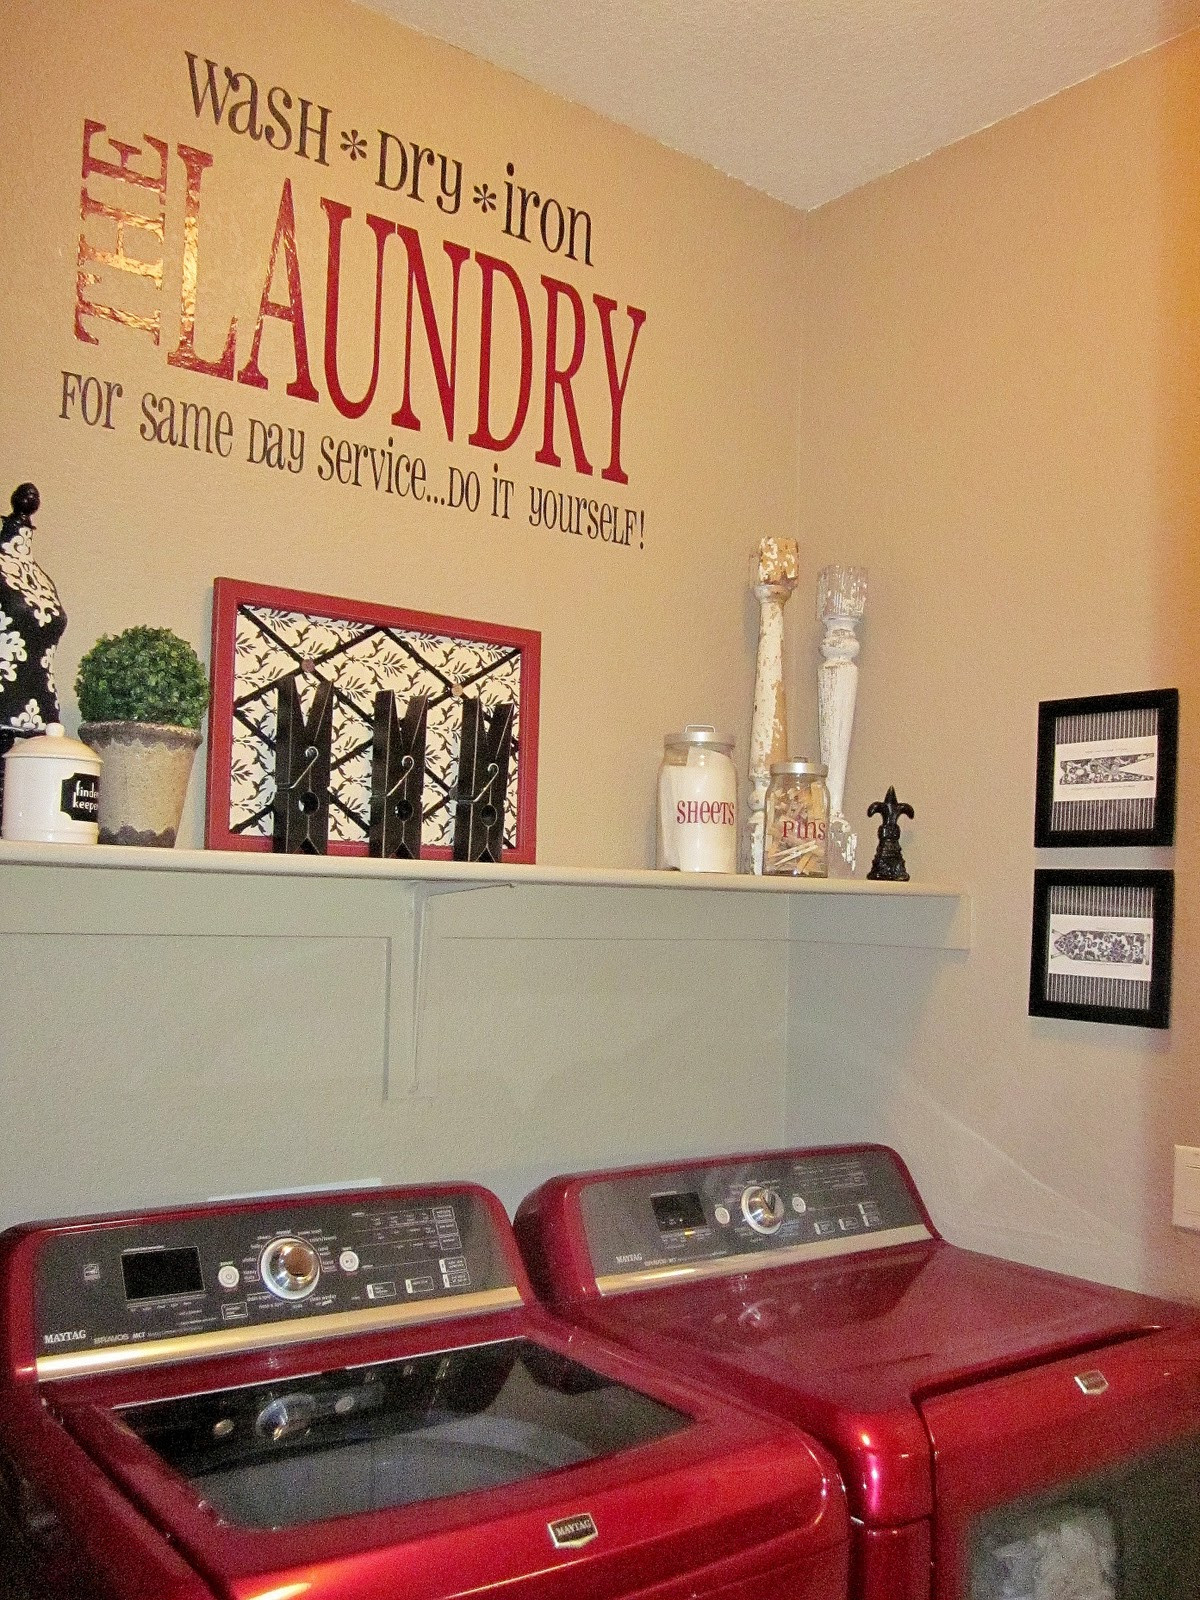 Best ideas about Laundry Room Decor Ideas . Save or Pin 13 Best of Laundry Room Wall Art Decorating Ideas Now.